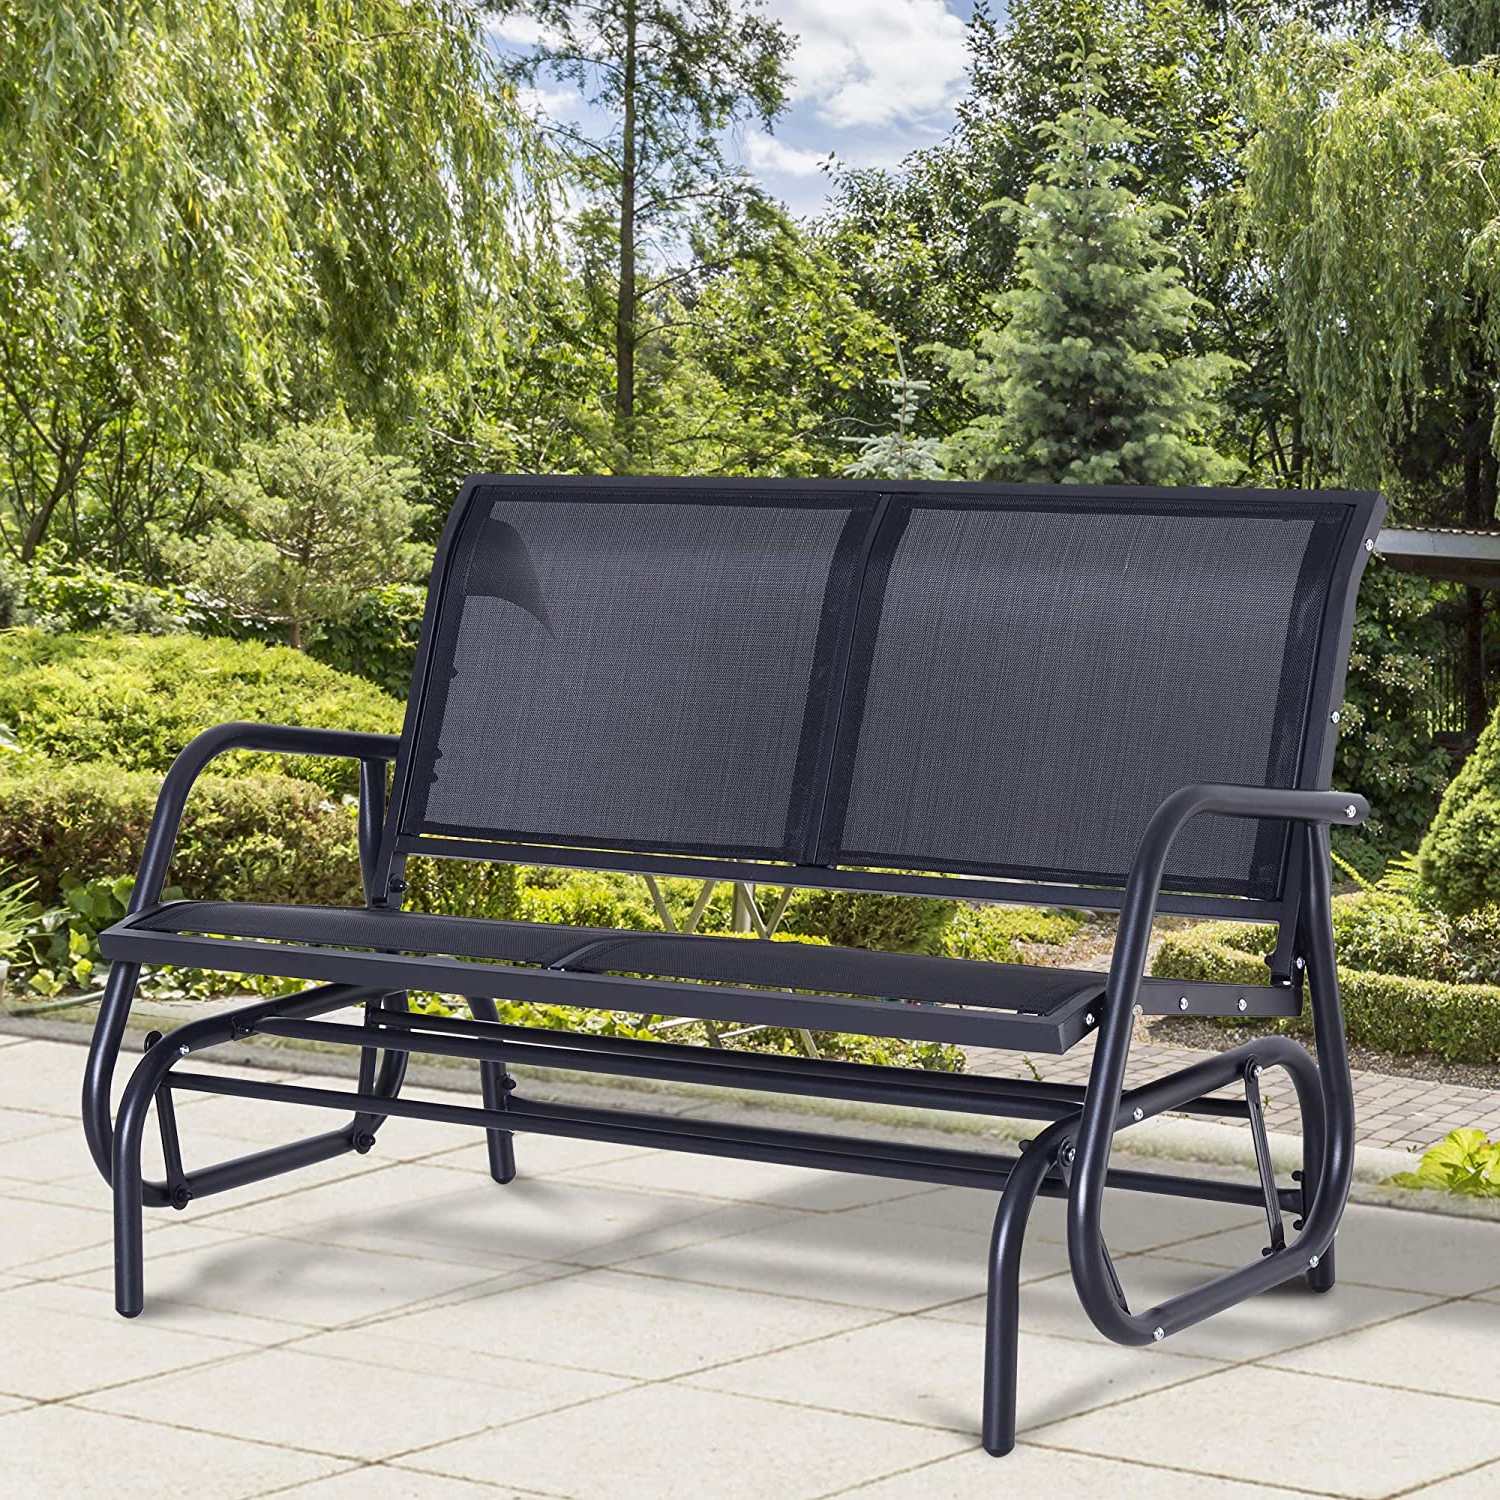 Outsunny Double Seat Swing Chair Outdoor Garden Patio Glider Bench Black Inside Recent Pauls Steel Garden Benches (View 13 of 30)